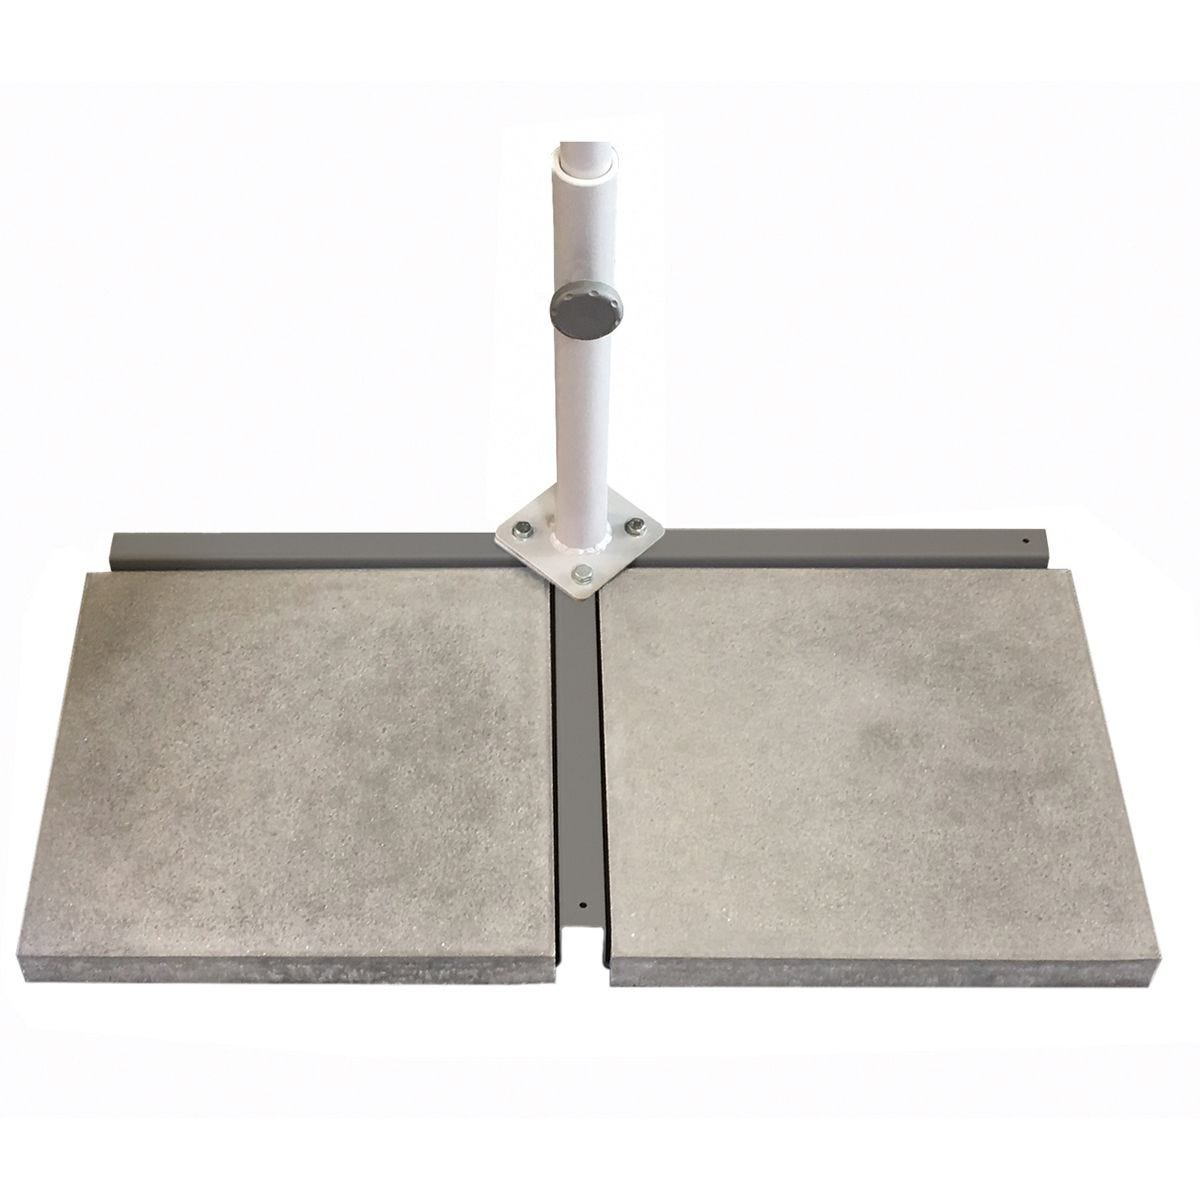 Max Green 30kg Flex Roof Cross Base with Support Tube & 2 Slabs